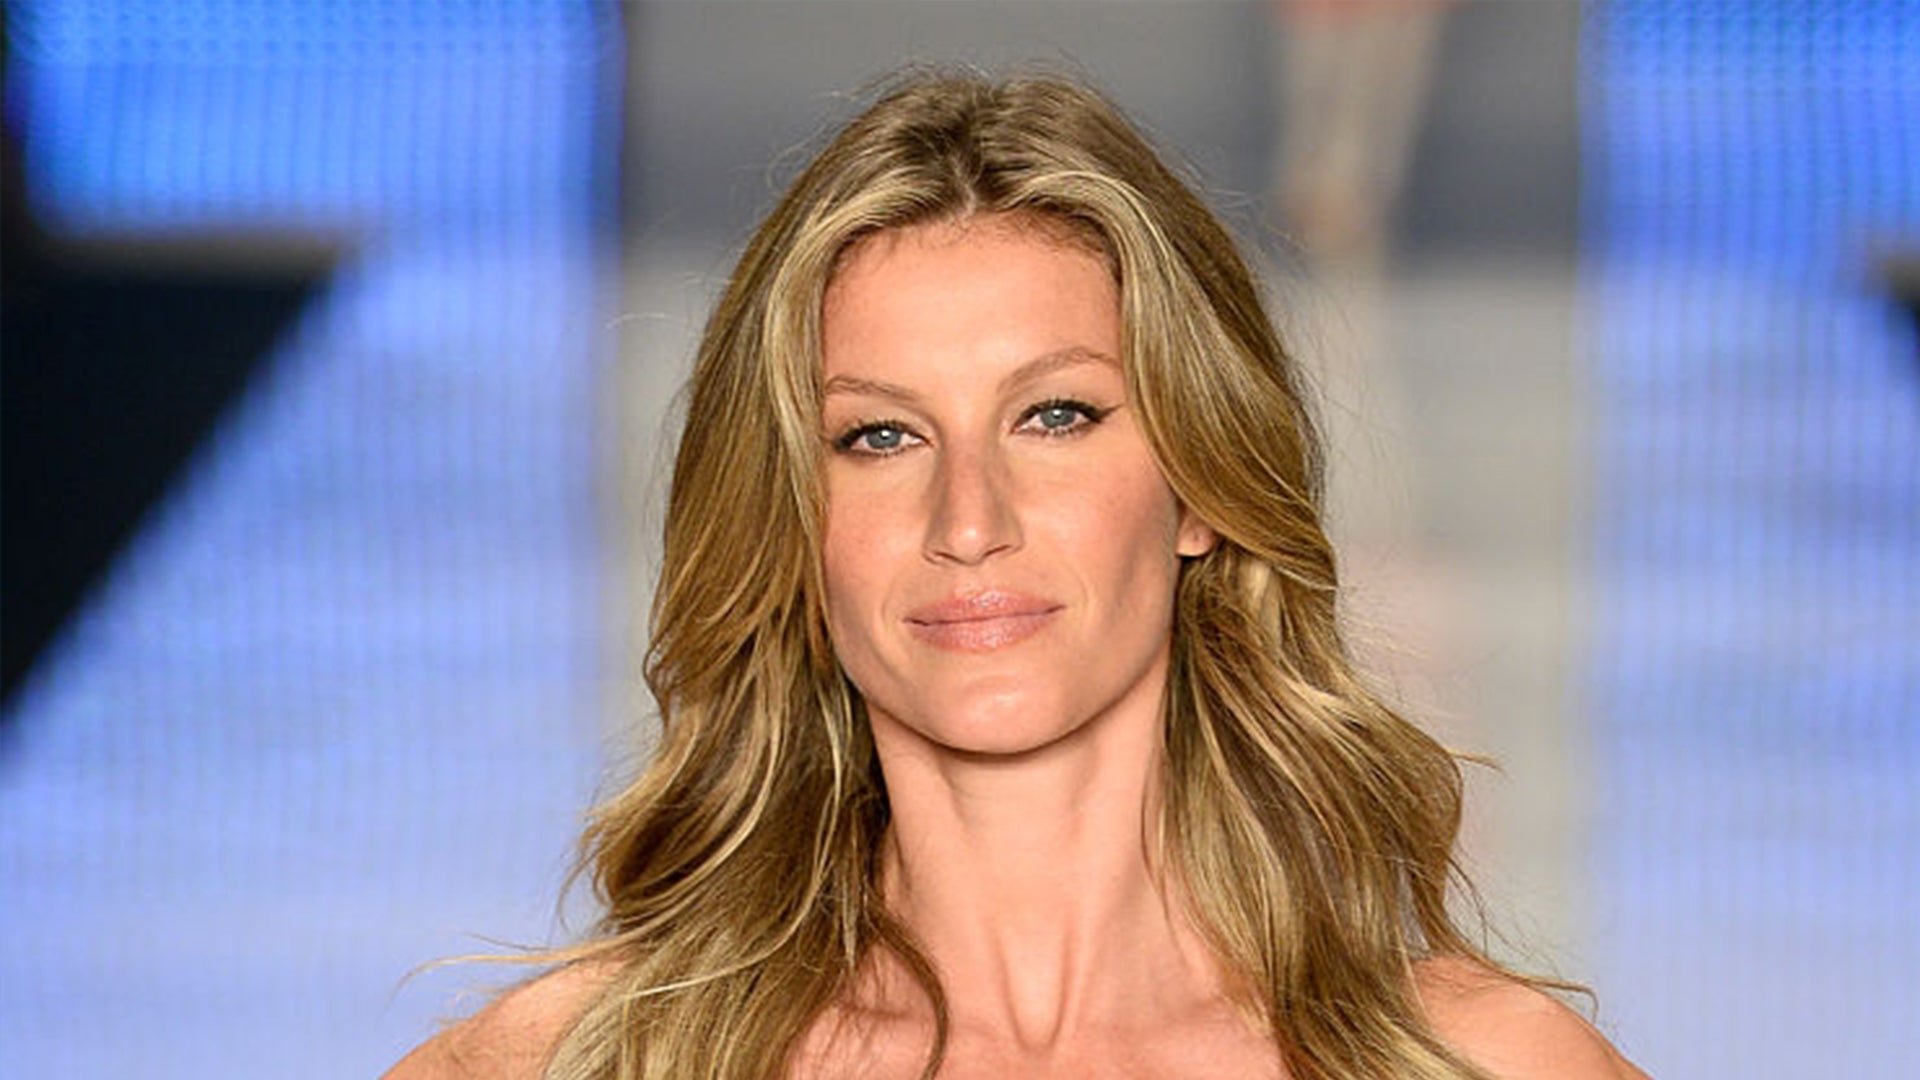 Gisele Bundchen and Daughter Vivian Are Identical in Childhood Pics